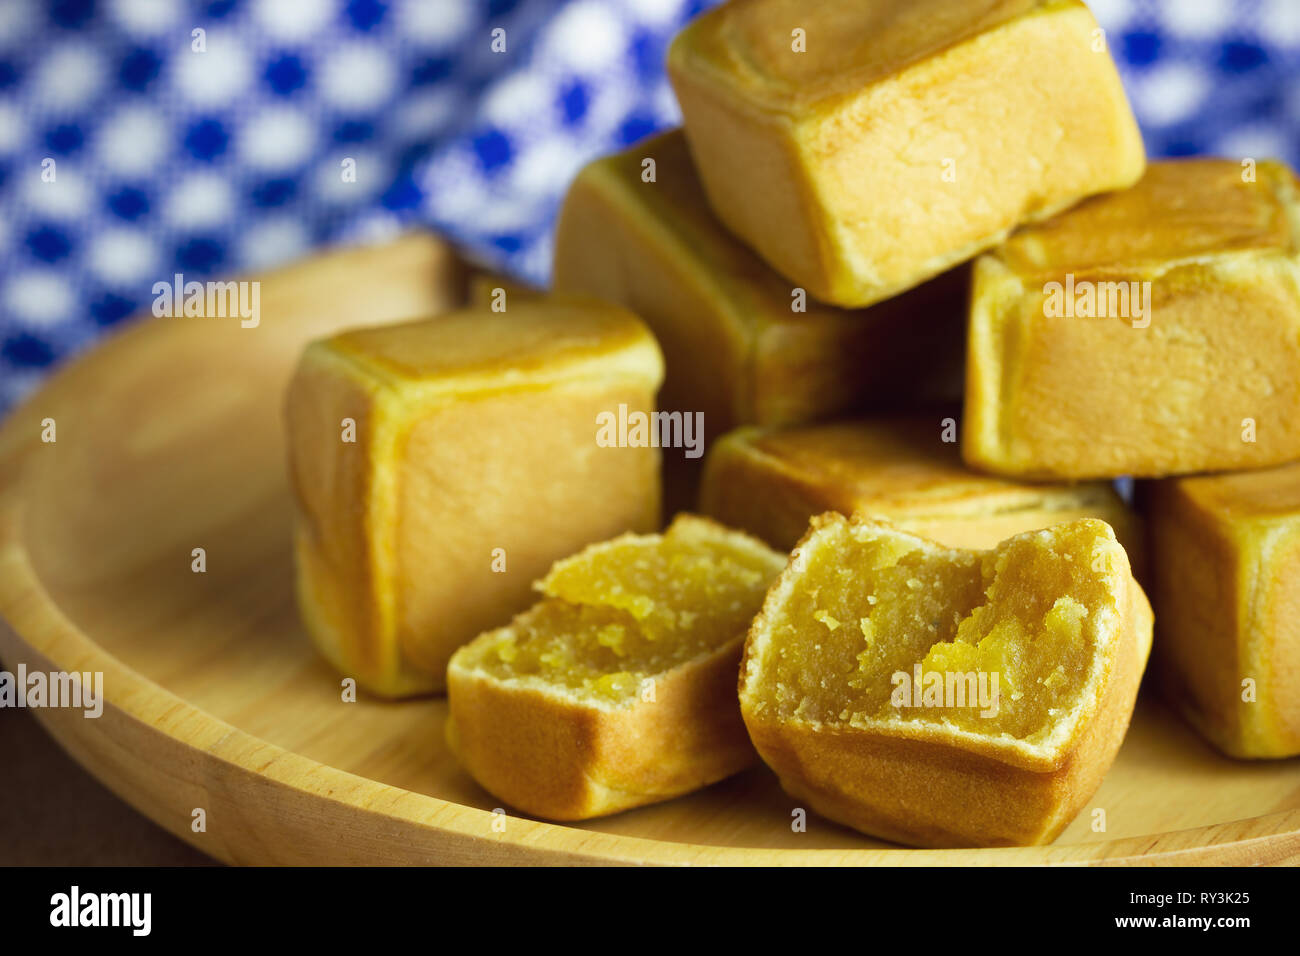 Closeup chinese cakes dice shaped are placed on a brown wooden table and have blue patterned tablecloths. - Stock Image